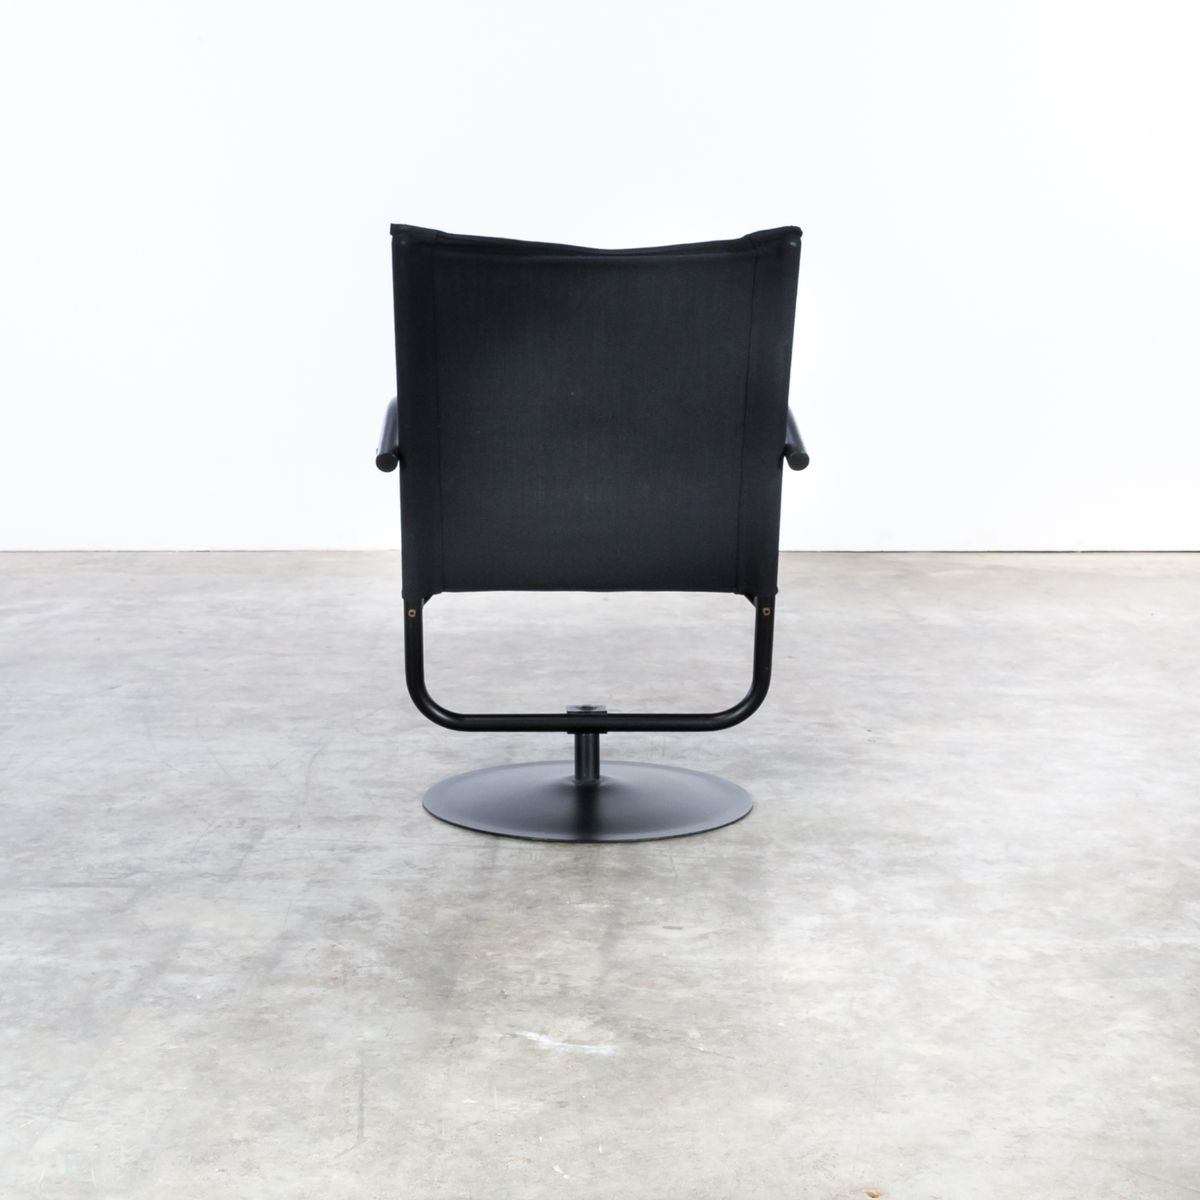 Black canvas swivel chair 1980s for sale at pamono for 1980s chair design